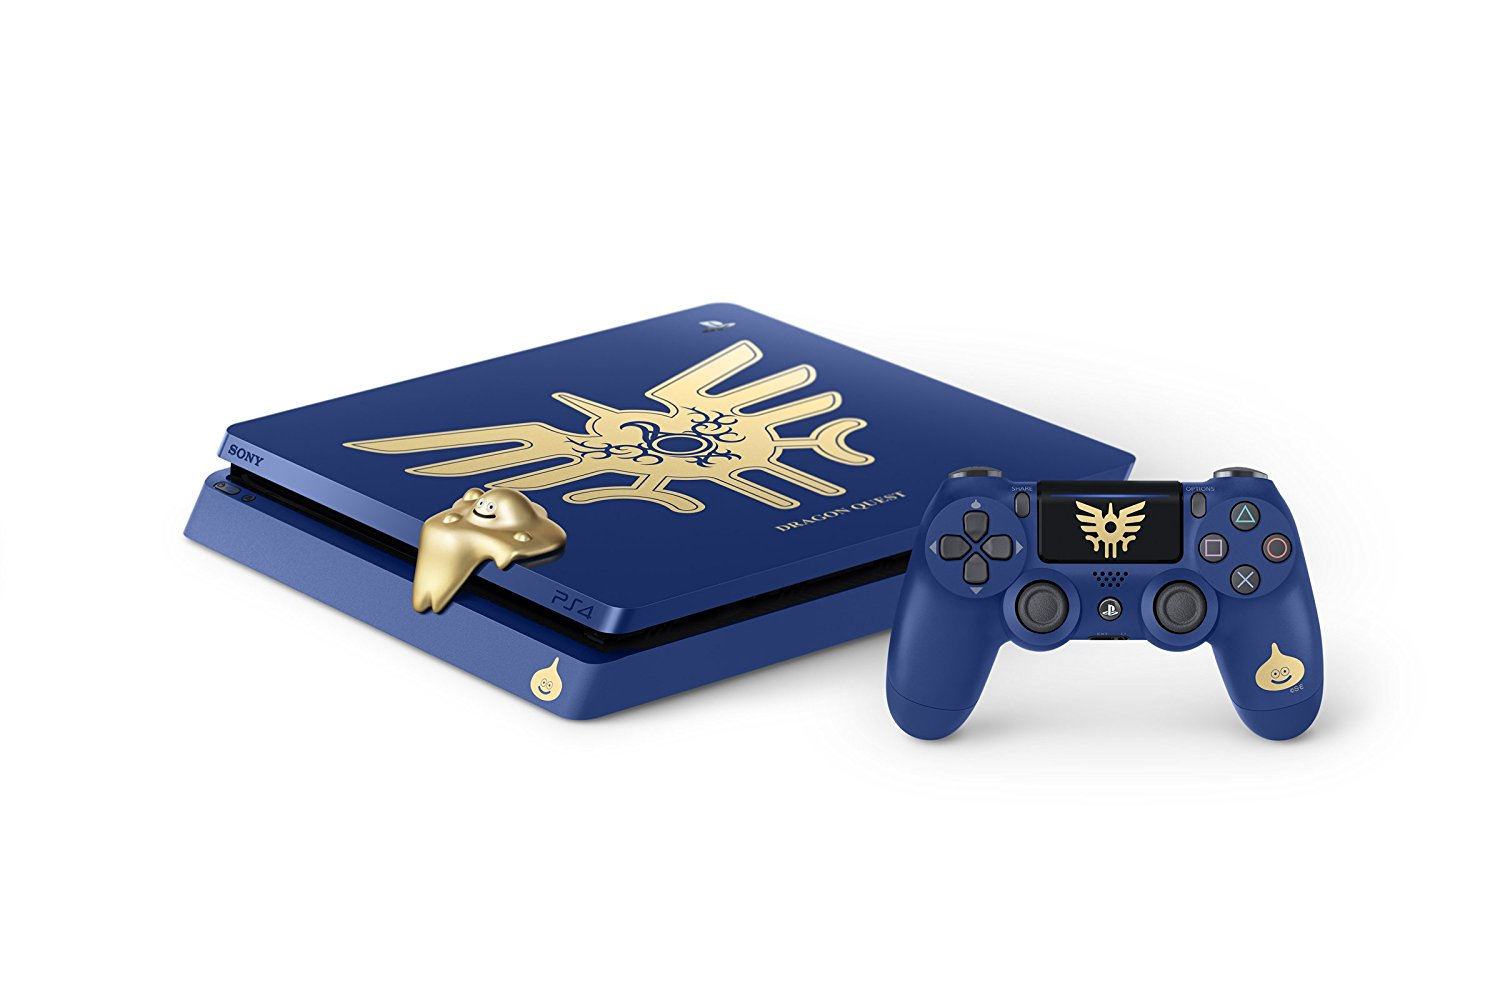 Playstation 4 dragonquest roto edition 5